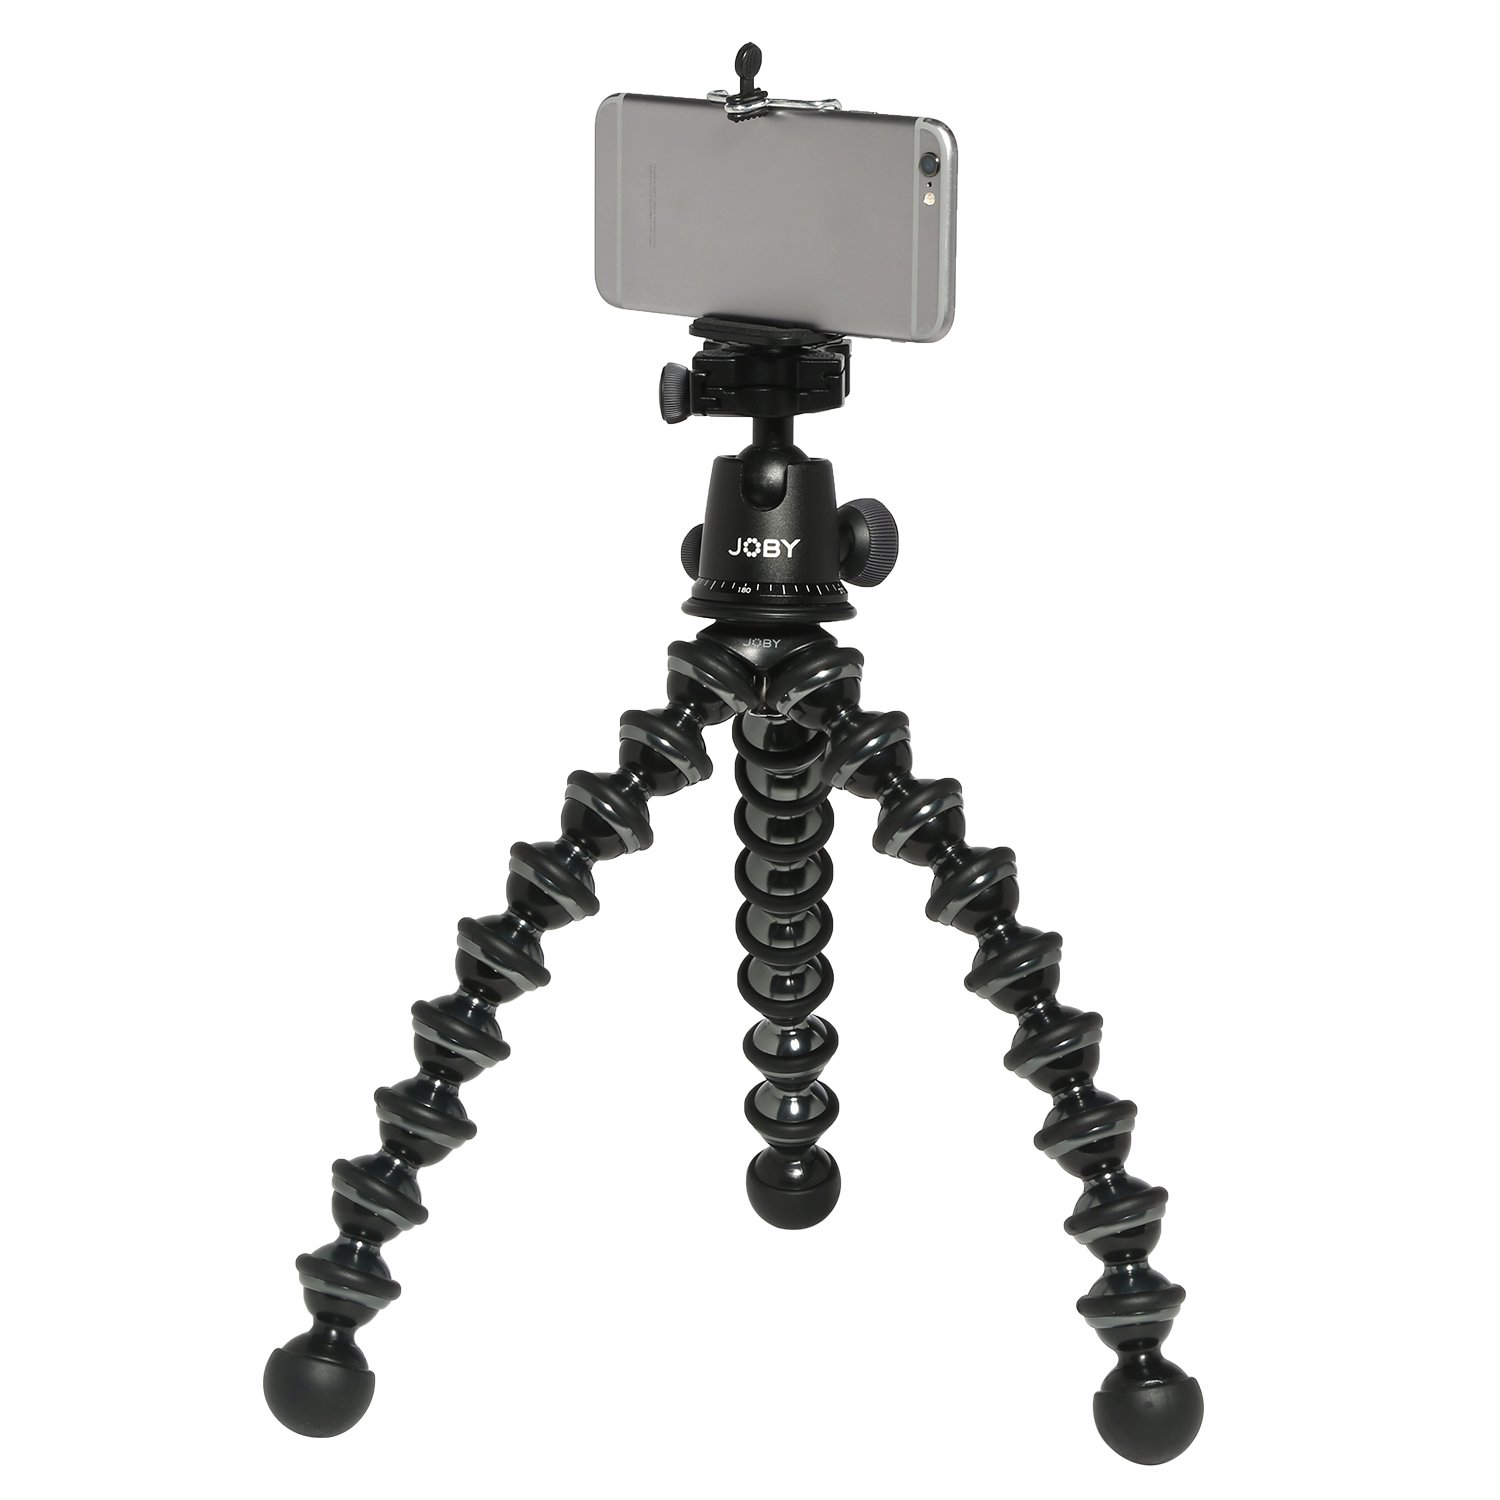 Joby GorillaPod Focus Flexible Tripod For DSLR Cameras w/ Ivation Mounting Kit for Most Smartphones and Tablets with Ivation Wireless Bluetooth Selfie Remote Control for IOS and Android Phones